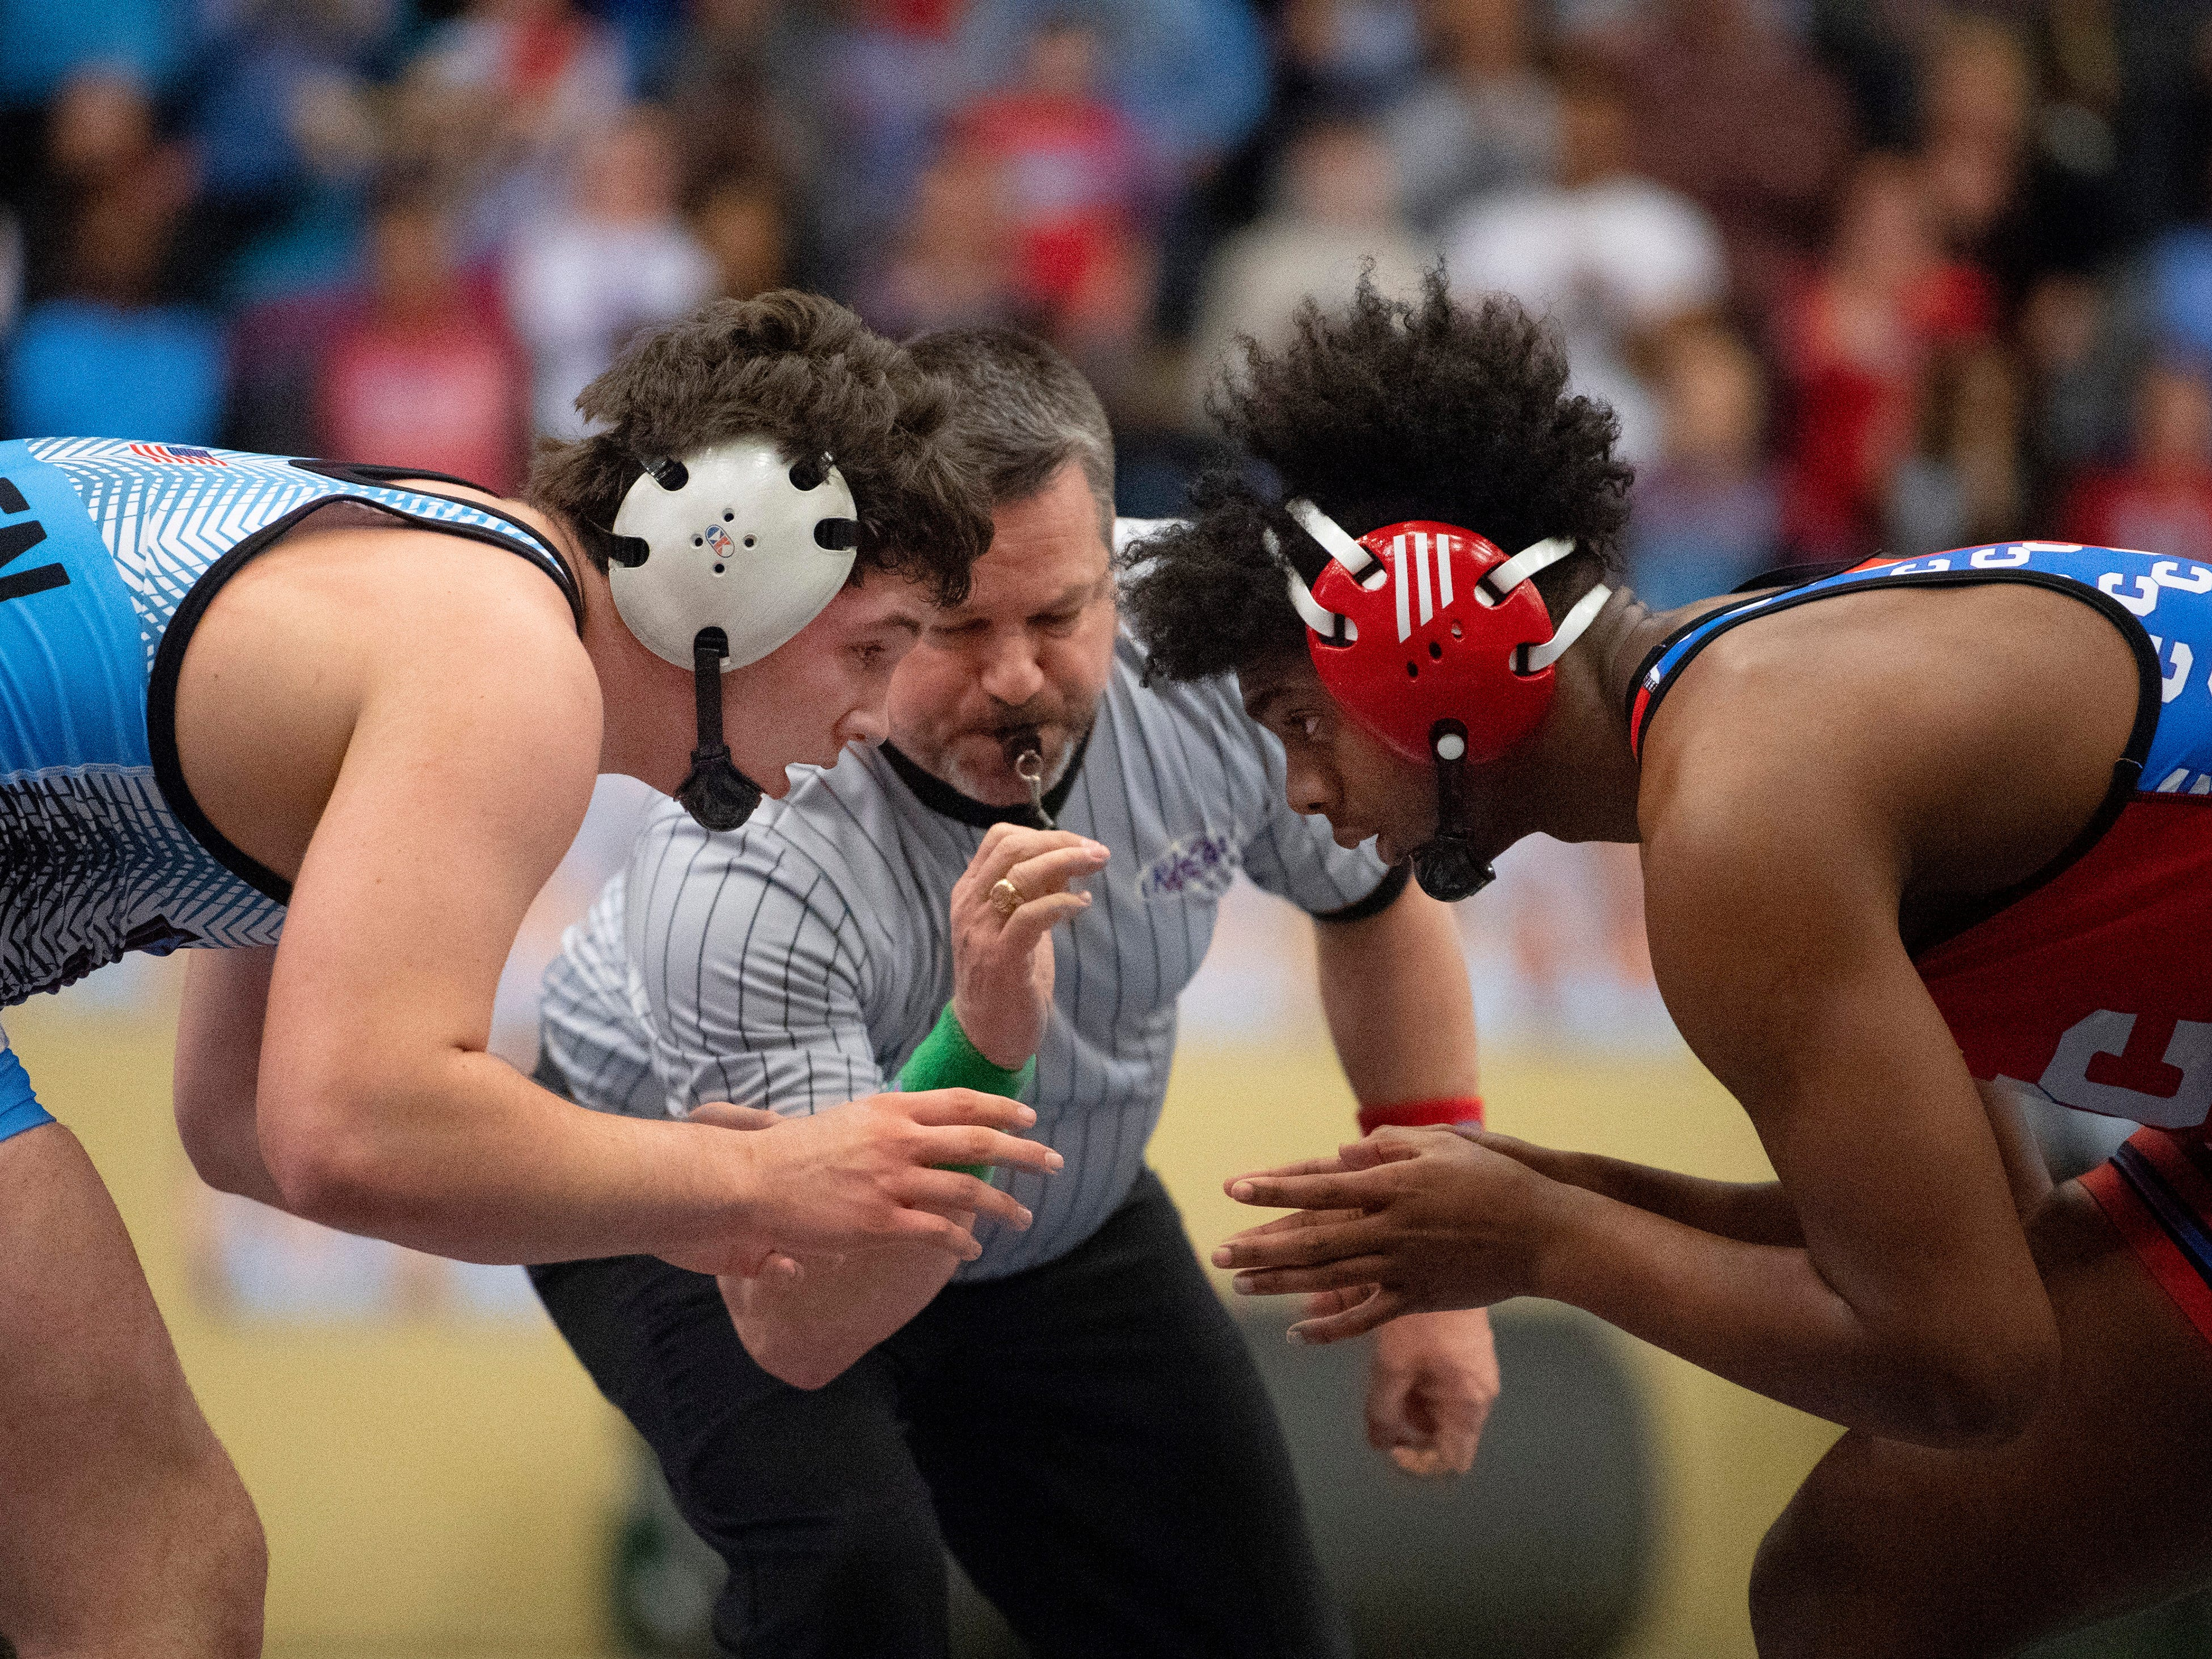 Union County's Mathias Ervin, top, competes against Christian County's Niko Bussell during the 220-pound championship match at the KHSAA State Wrestling Championships at the Alltech Arena in Lexington, Ky., Saturday afternoon. Ervin defeated Bussell with a 3-1 decision for his second state championship.